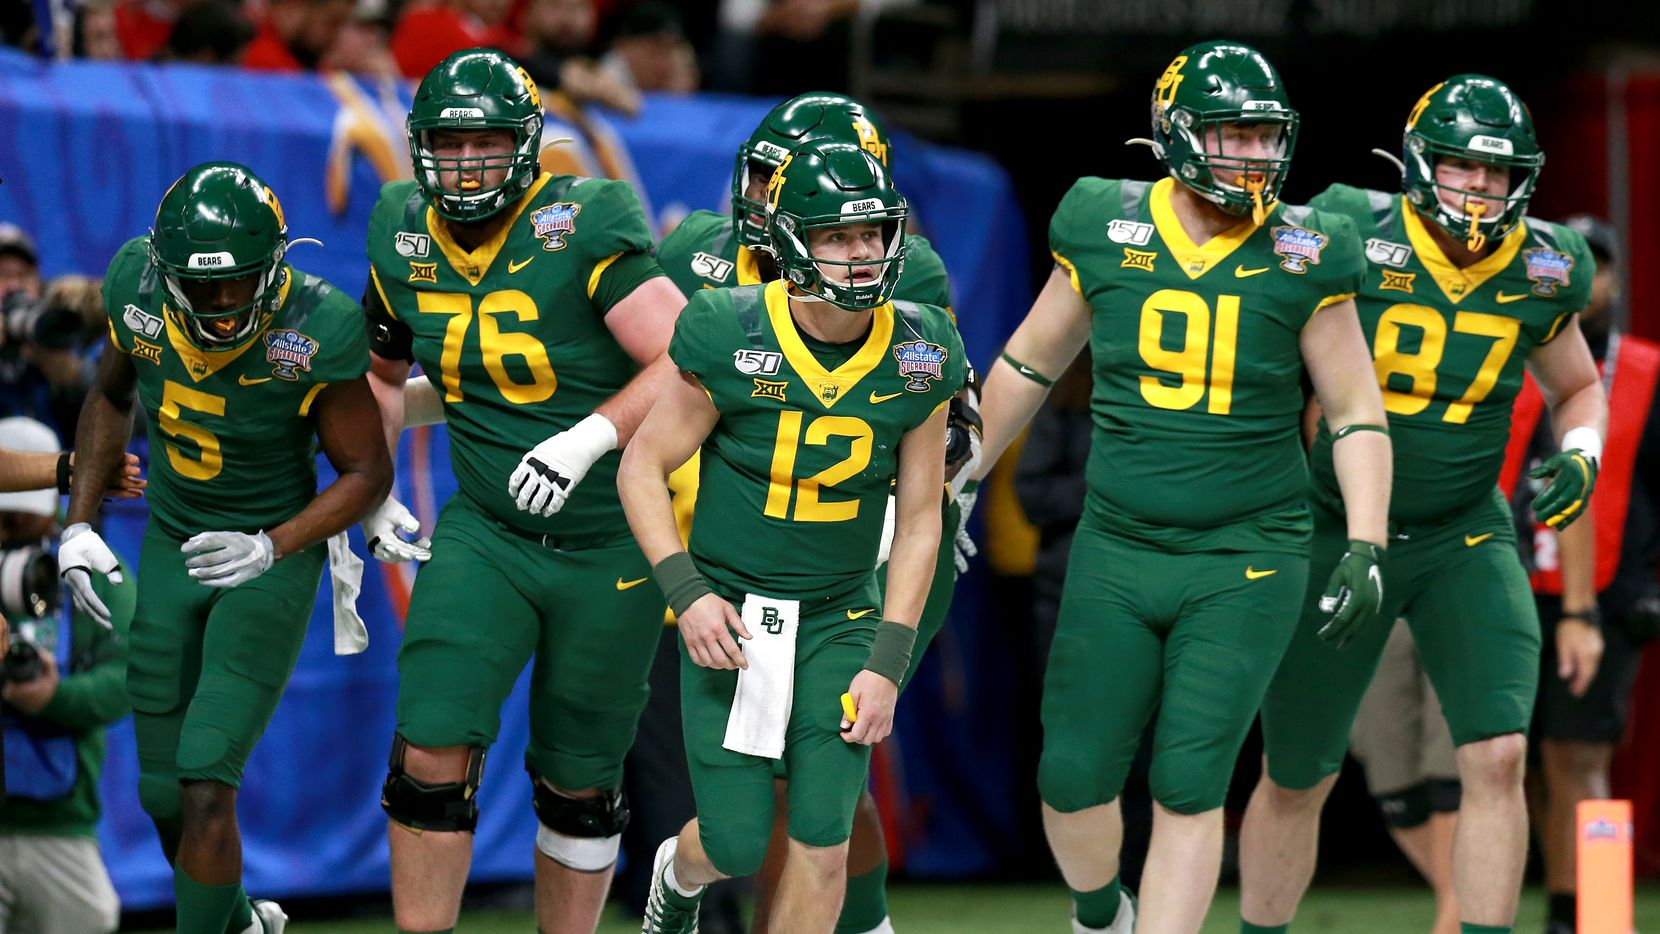 FILE — Charlie Brewer #12 of the Baylor Bears reacts with teammater after his team scored a touchdown against the Georgia Bulldogs during the Allstate Sugar Bowl at Mercedes Benz Superdome on January 01, 2020 in New Orleans, Louisiana.